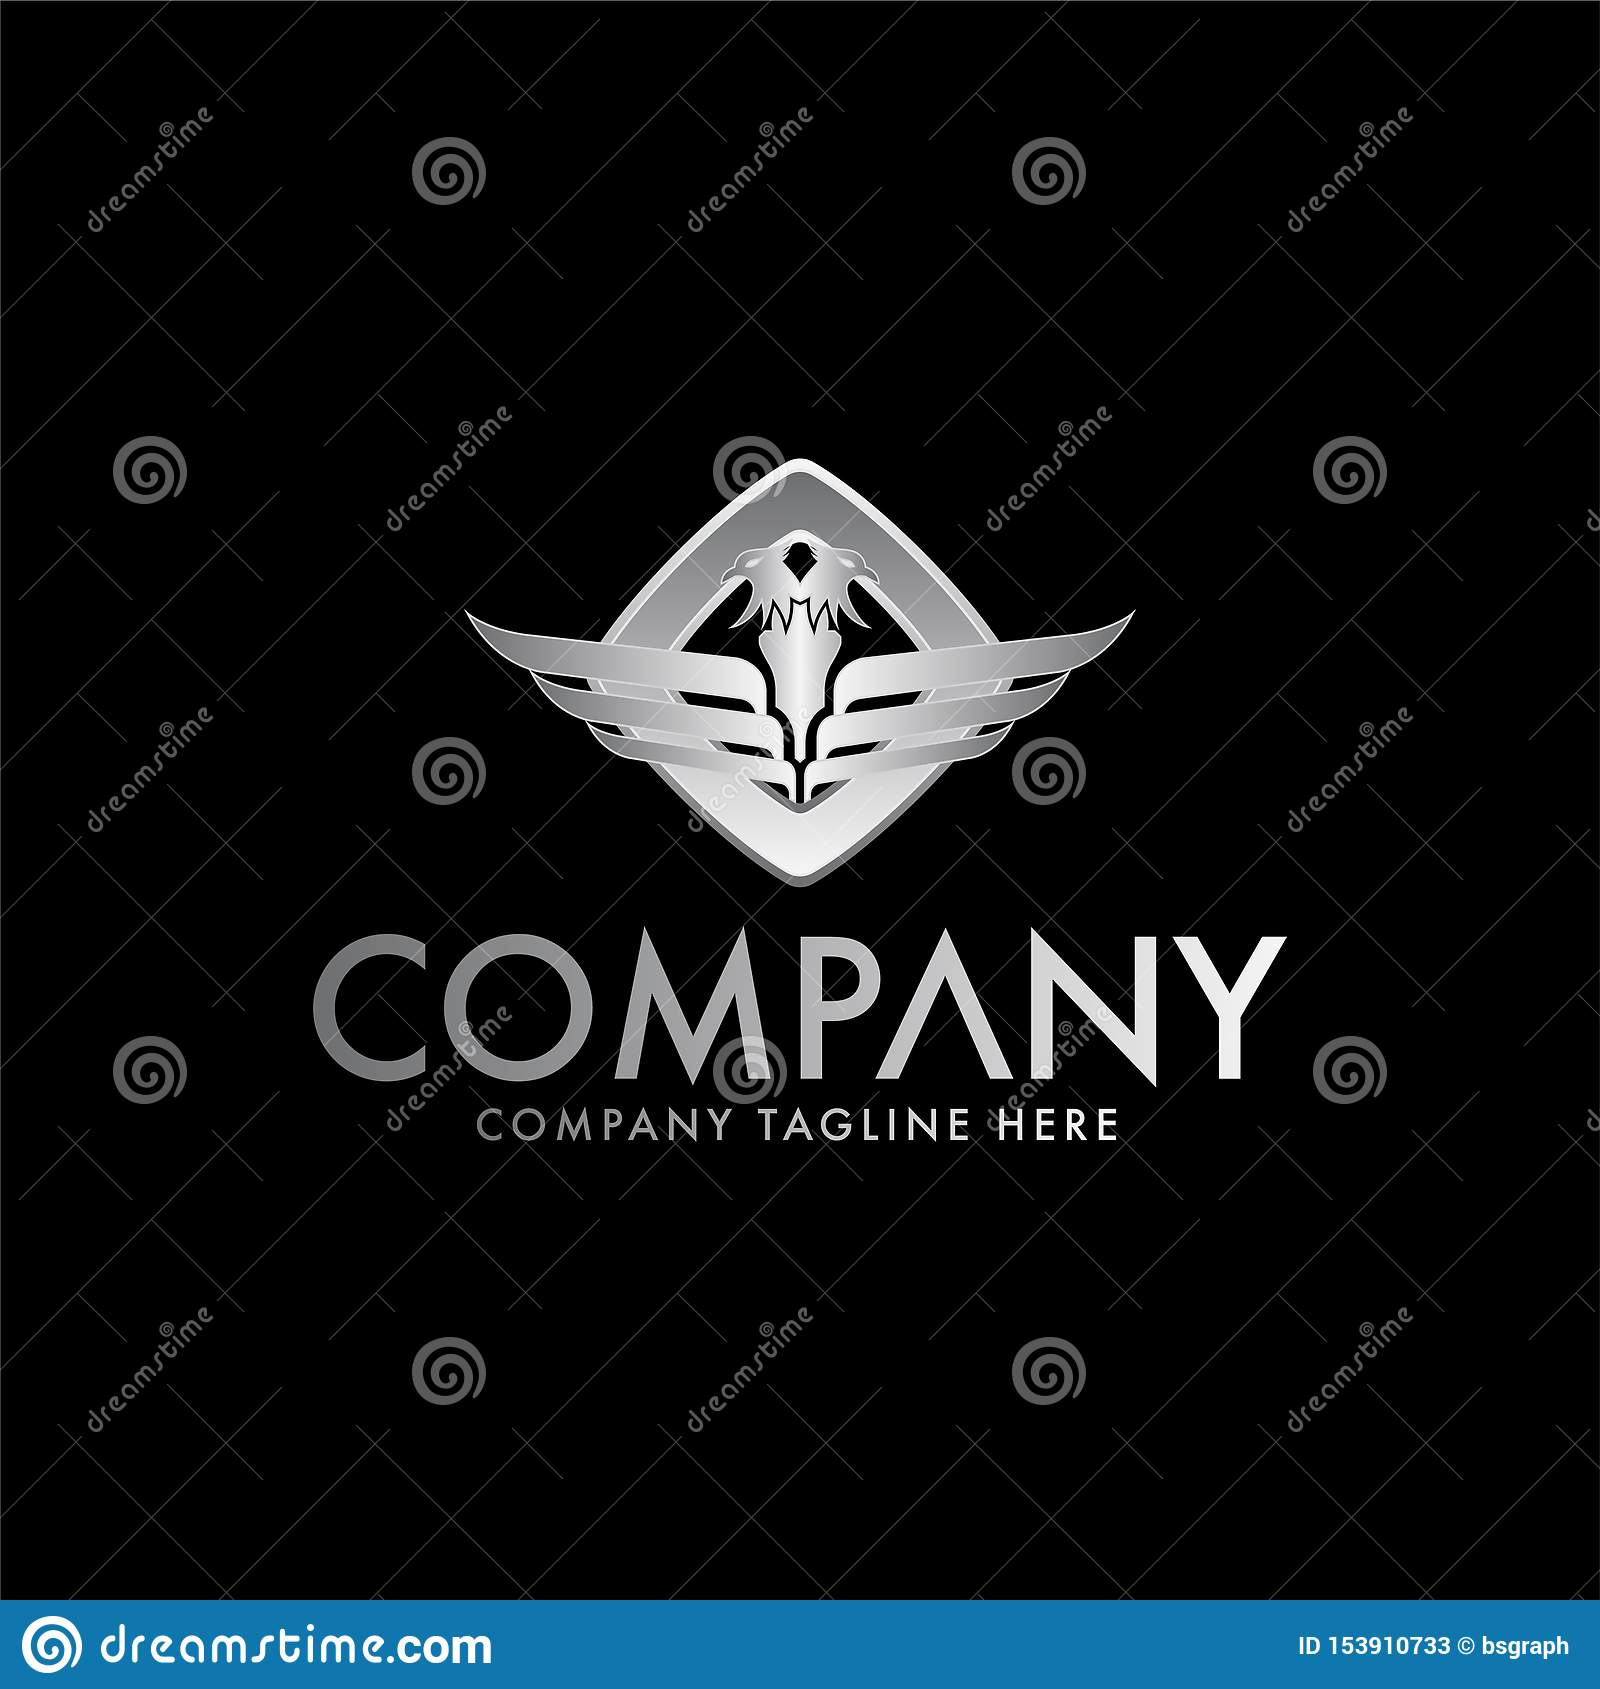 Wings and double heat eagle logo design template